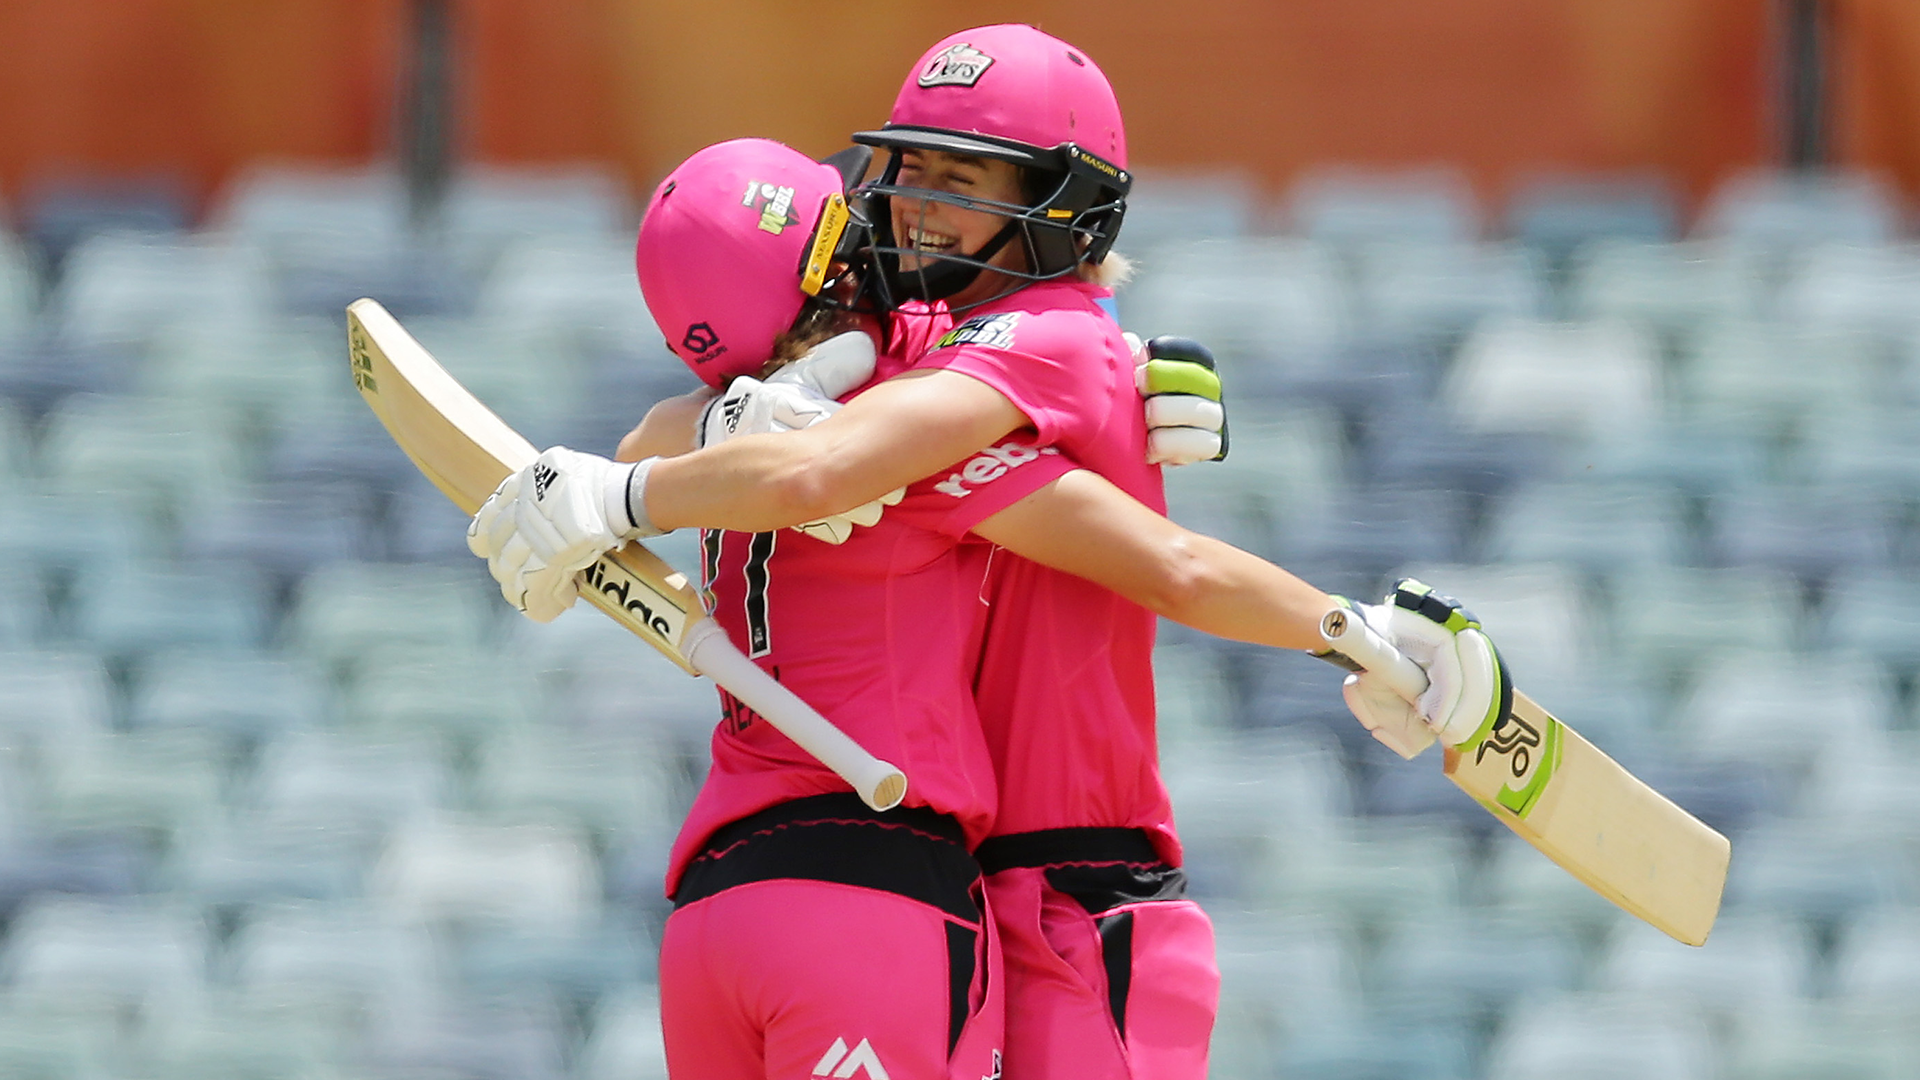 WBBL05: Alyssa Healy and Ellyse Perry put together record-breaking partnership for Sydney Sixers